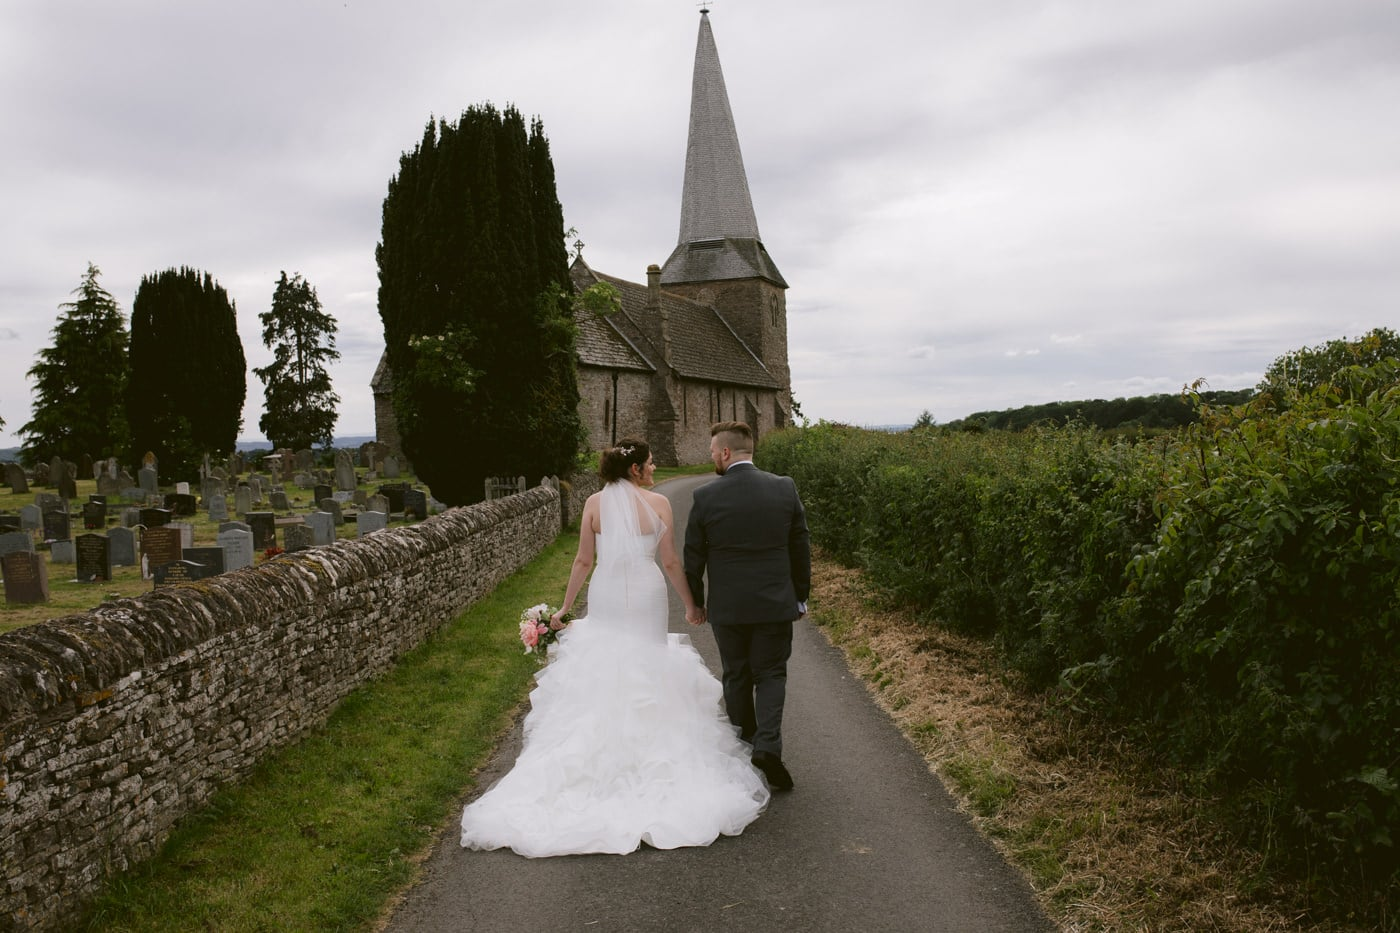 Bride and Groom Walking down the Church Lane Hand in Hand Portrait Photography Session